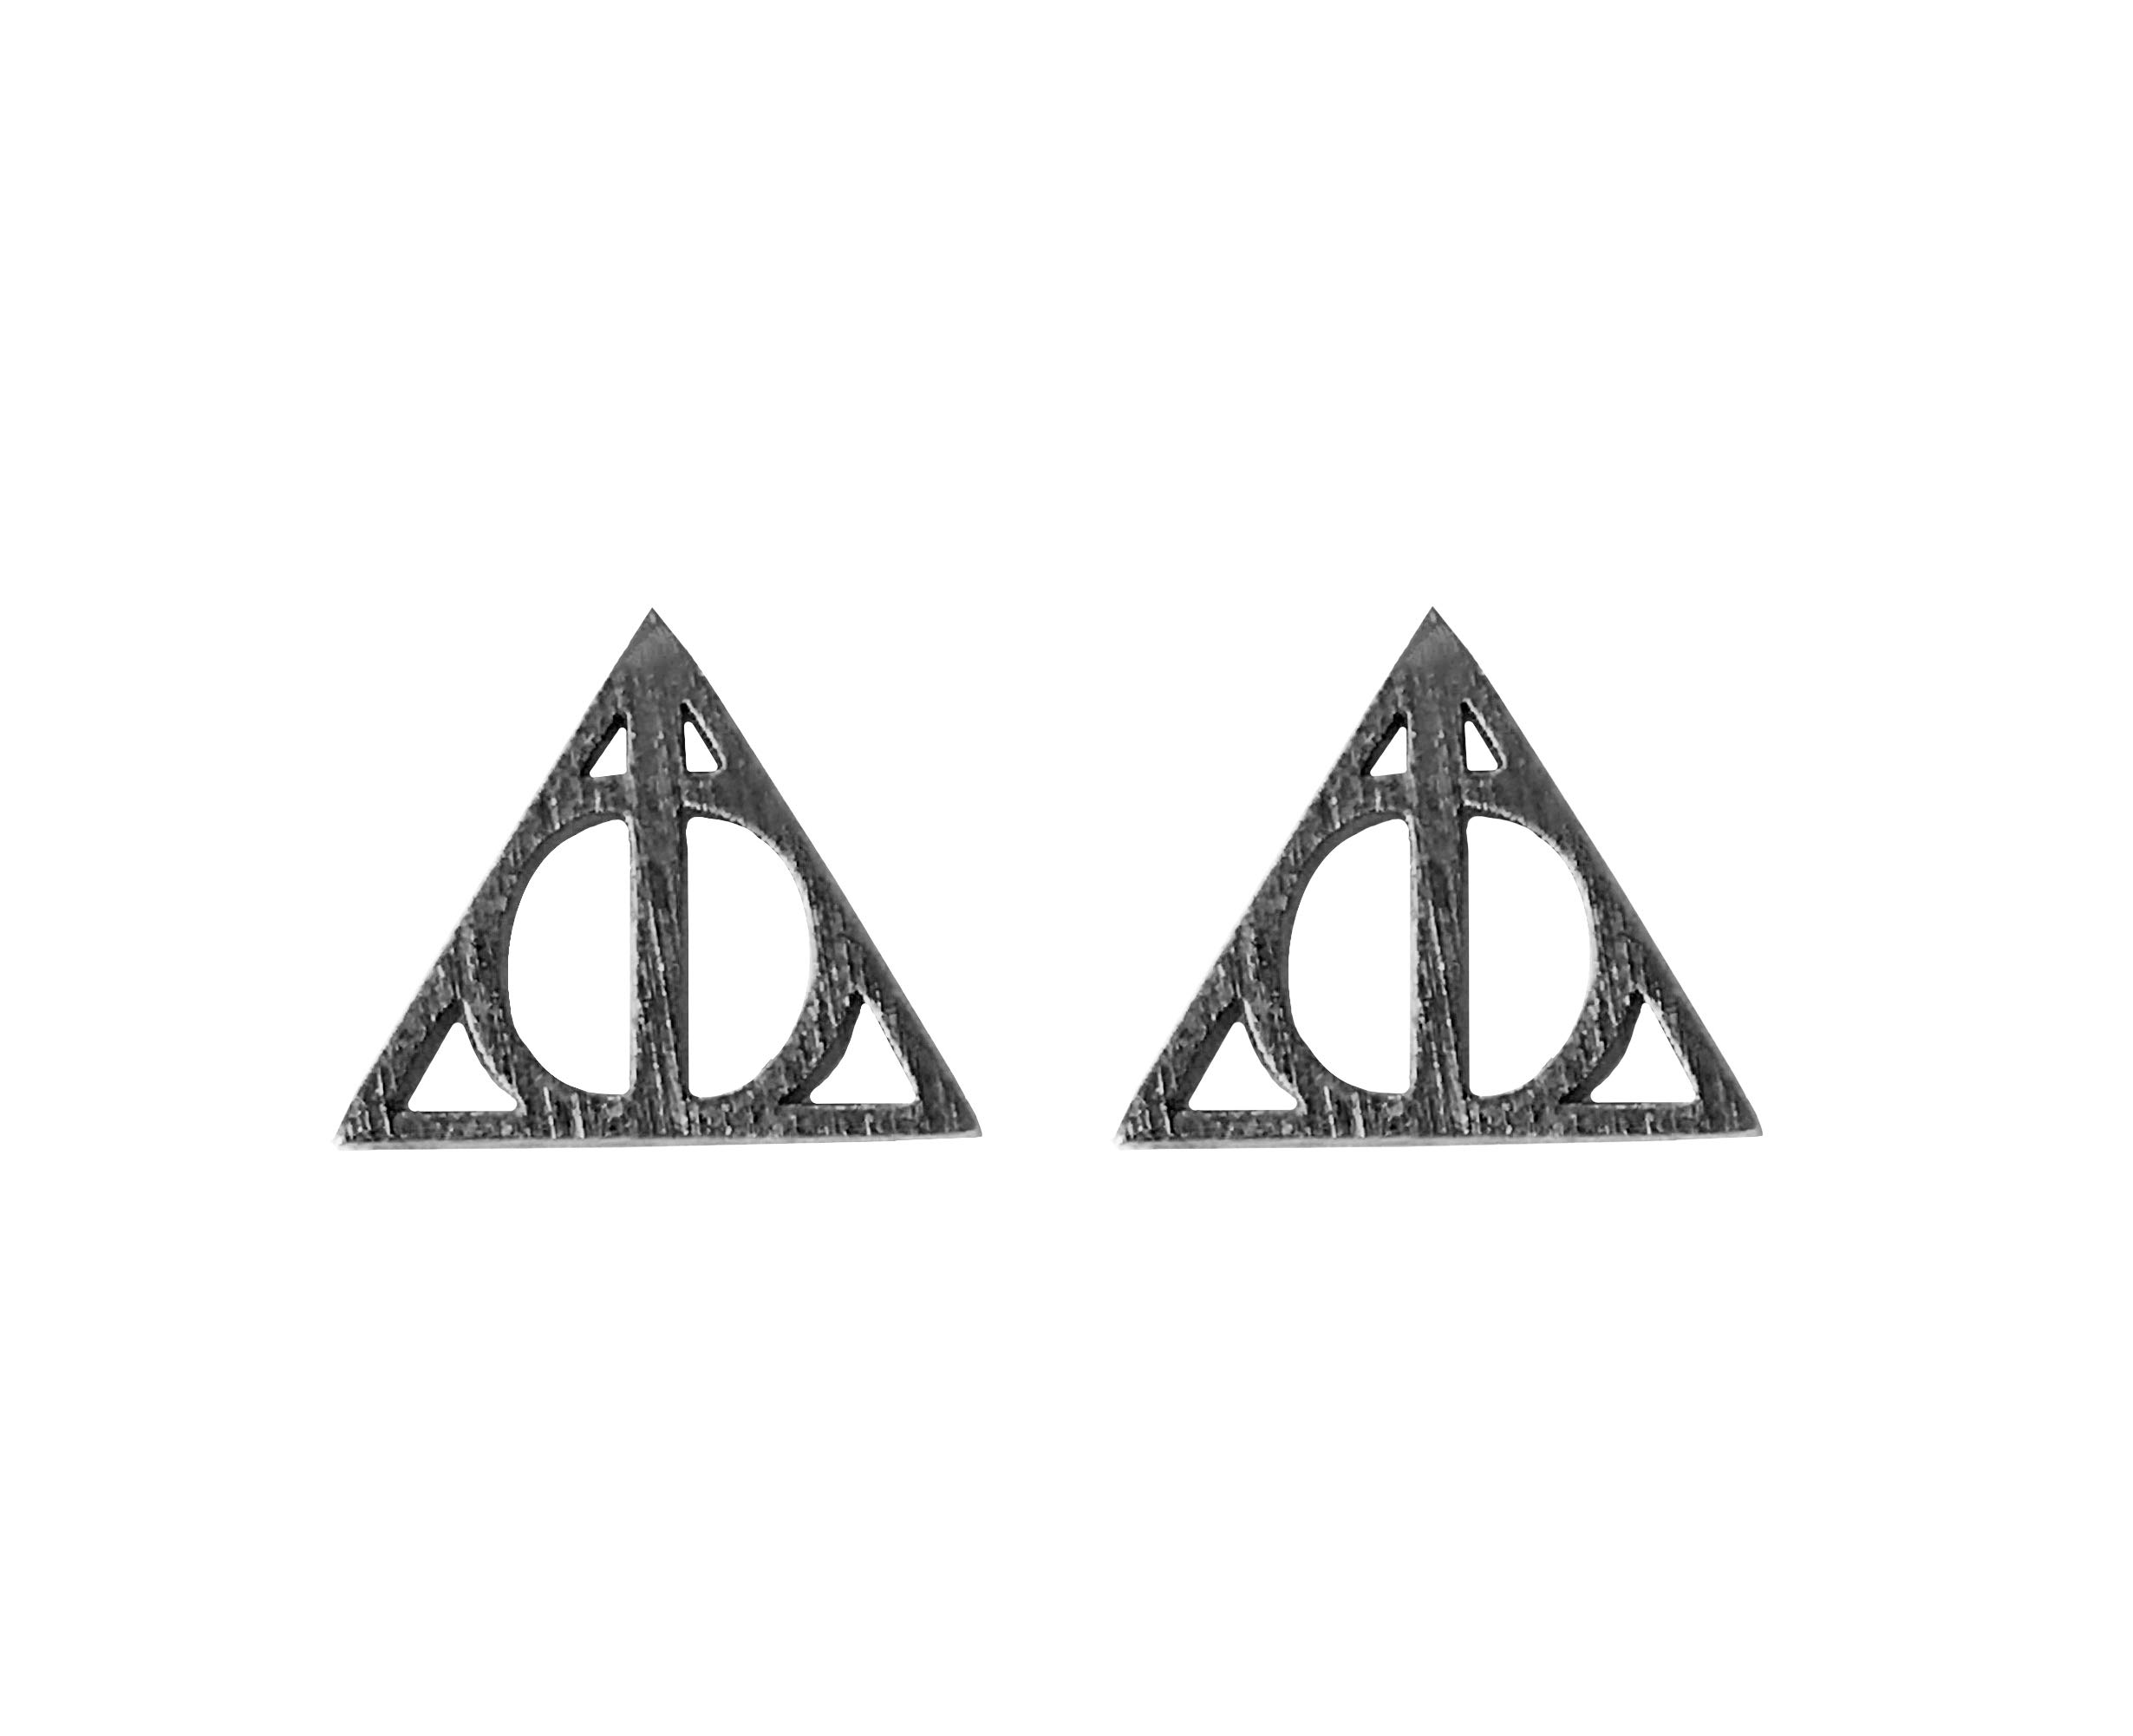 Altitude Boutique Geometric Triangle Stud Pyramid Earrings Punk Earrings (Gold, Silver) (Carbon Black)